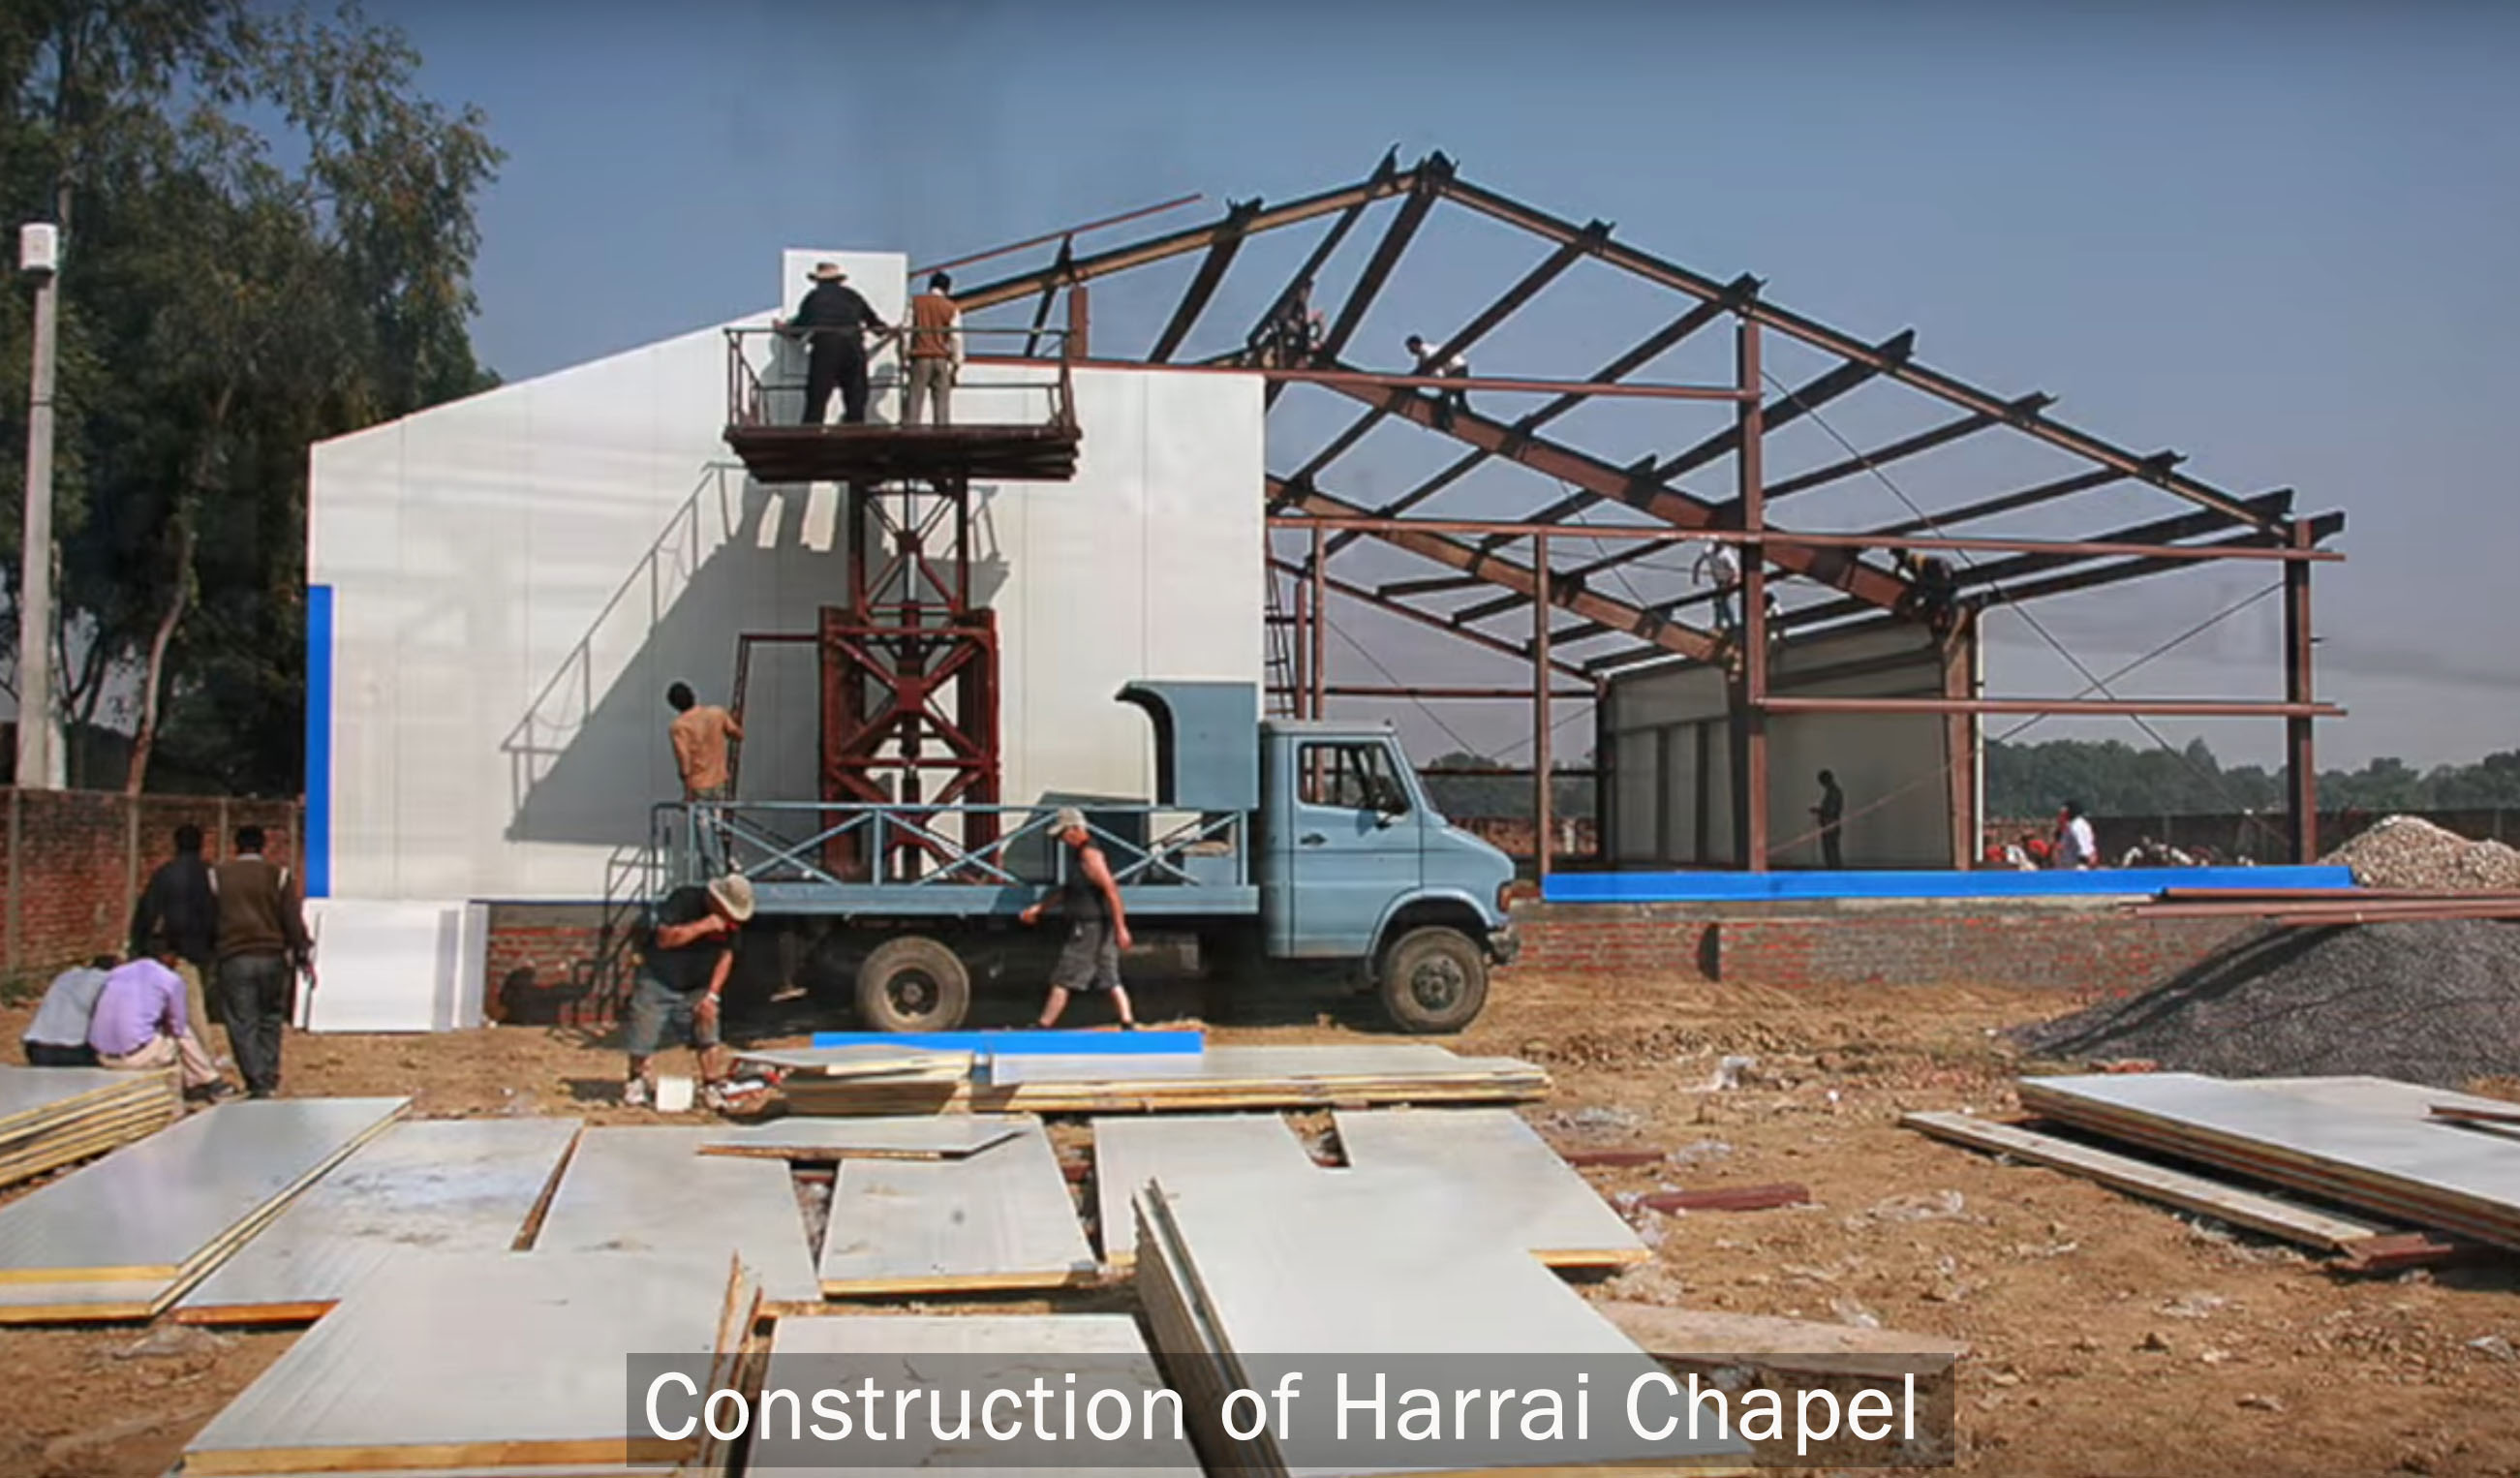 Harrai chapel construction